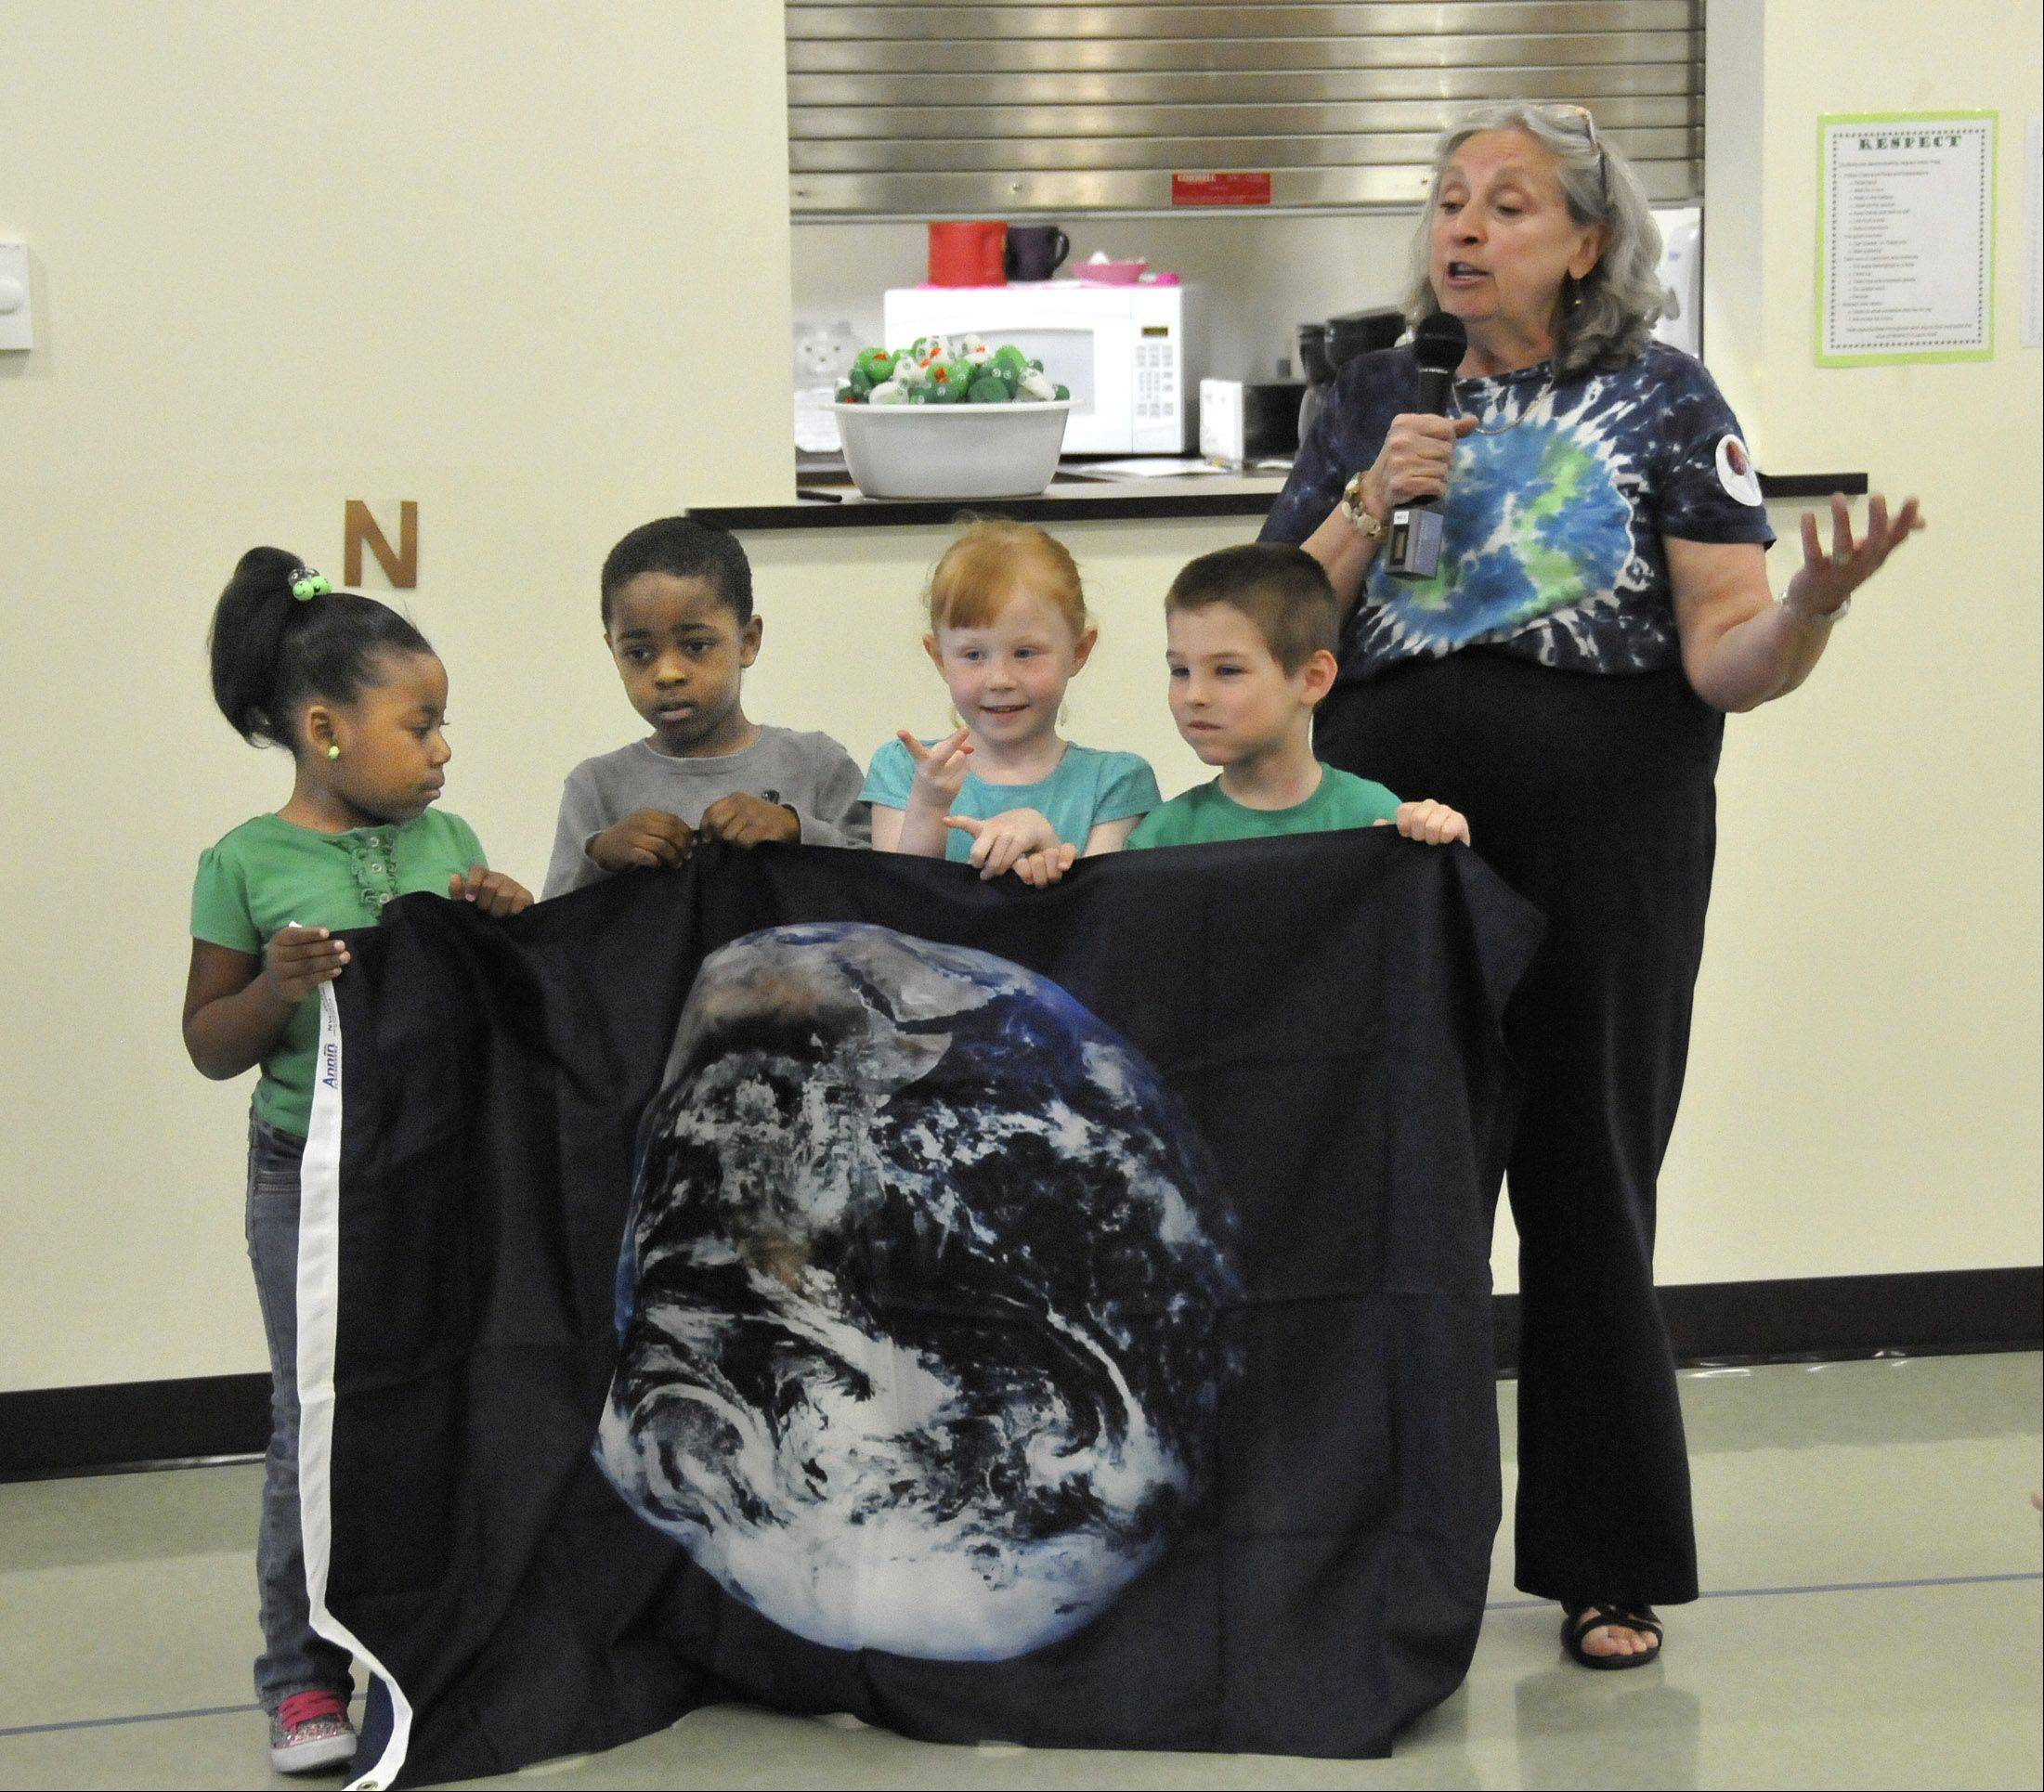 SCARCE representative Kay McKeen presents an Earth Day flag Monday to the Ann Reid Early Childhood Center in Naperville. Preschoolers, including Jayce Fox, Amarris Lofton, Colette McInerny and Max Henson helped hold the flag during the presentation.